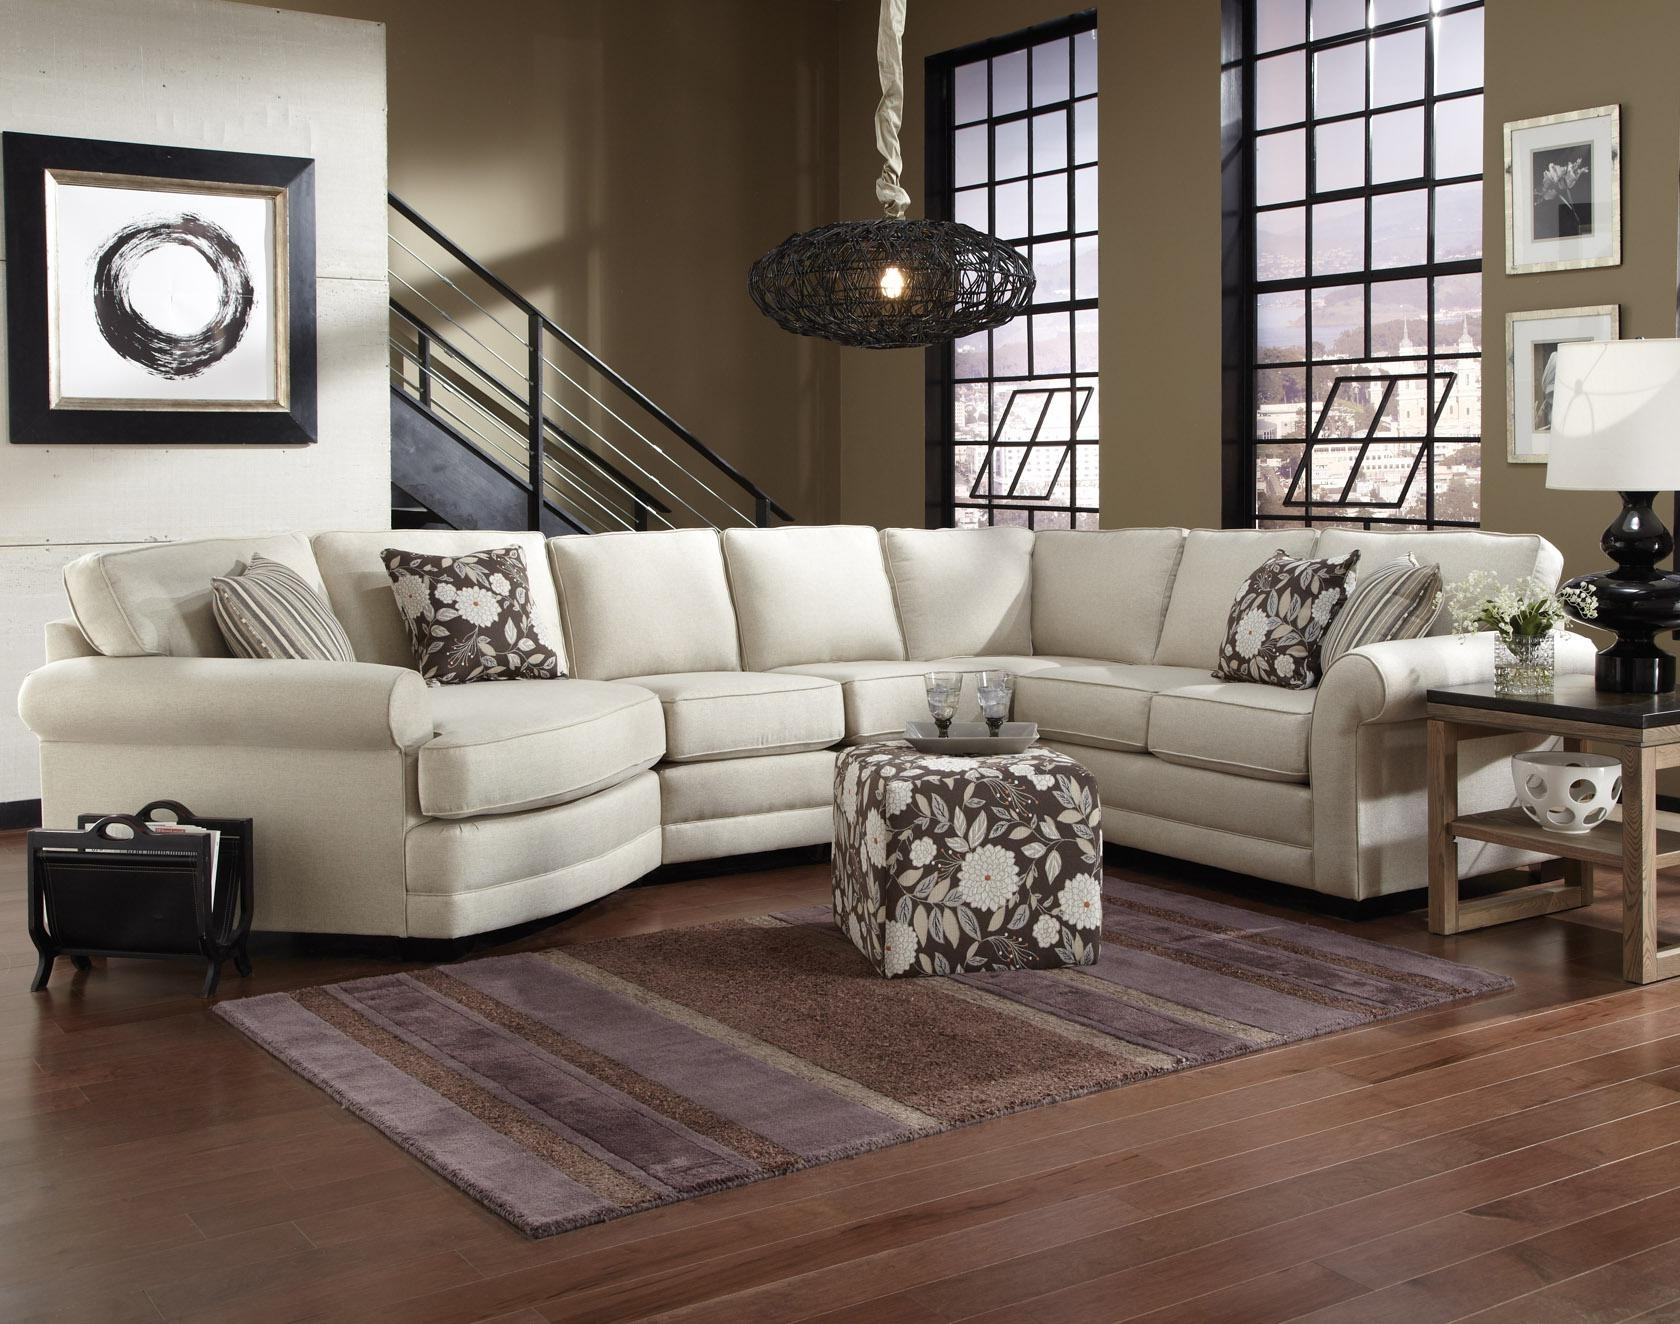 Most Recent England Brantley 5 Seat Sectional Sofa With Cuddler – Ahfa – Sofa With Clarksville Tn Sectional Sofas (View 7 of 15)